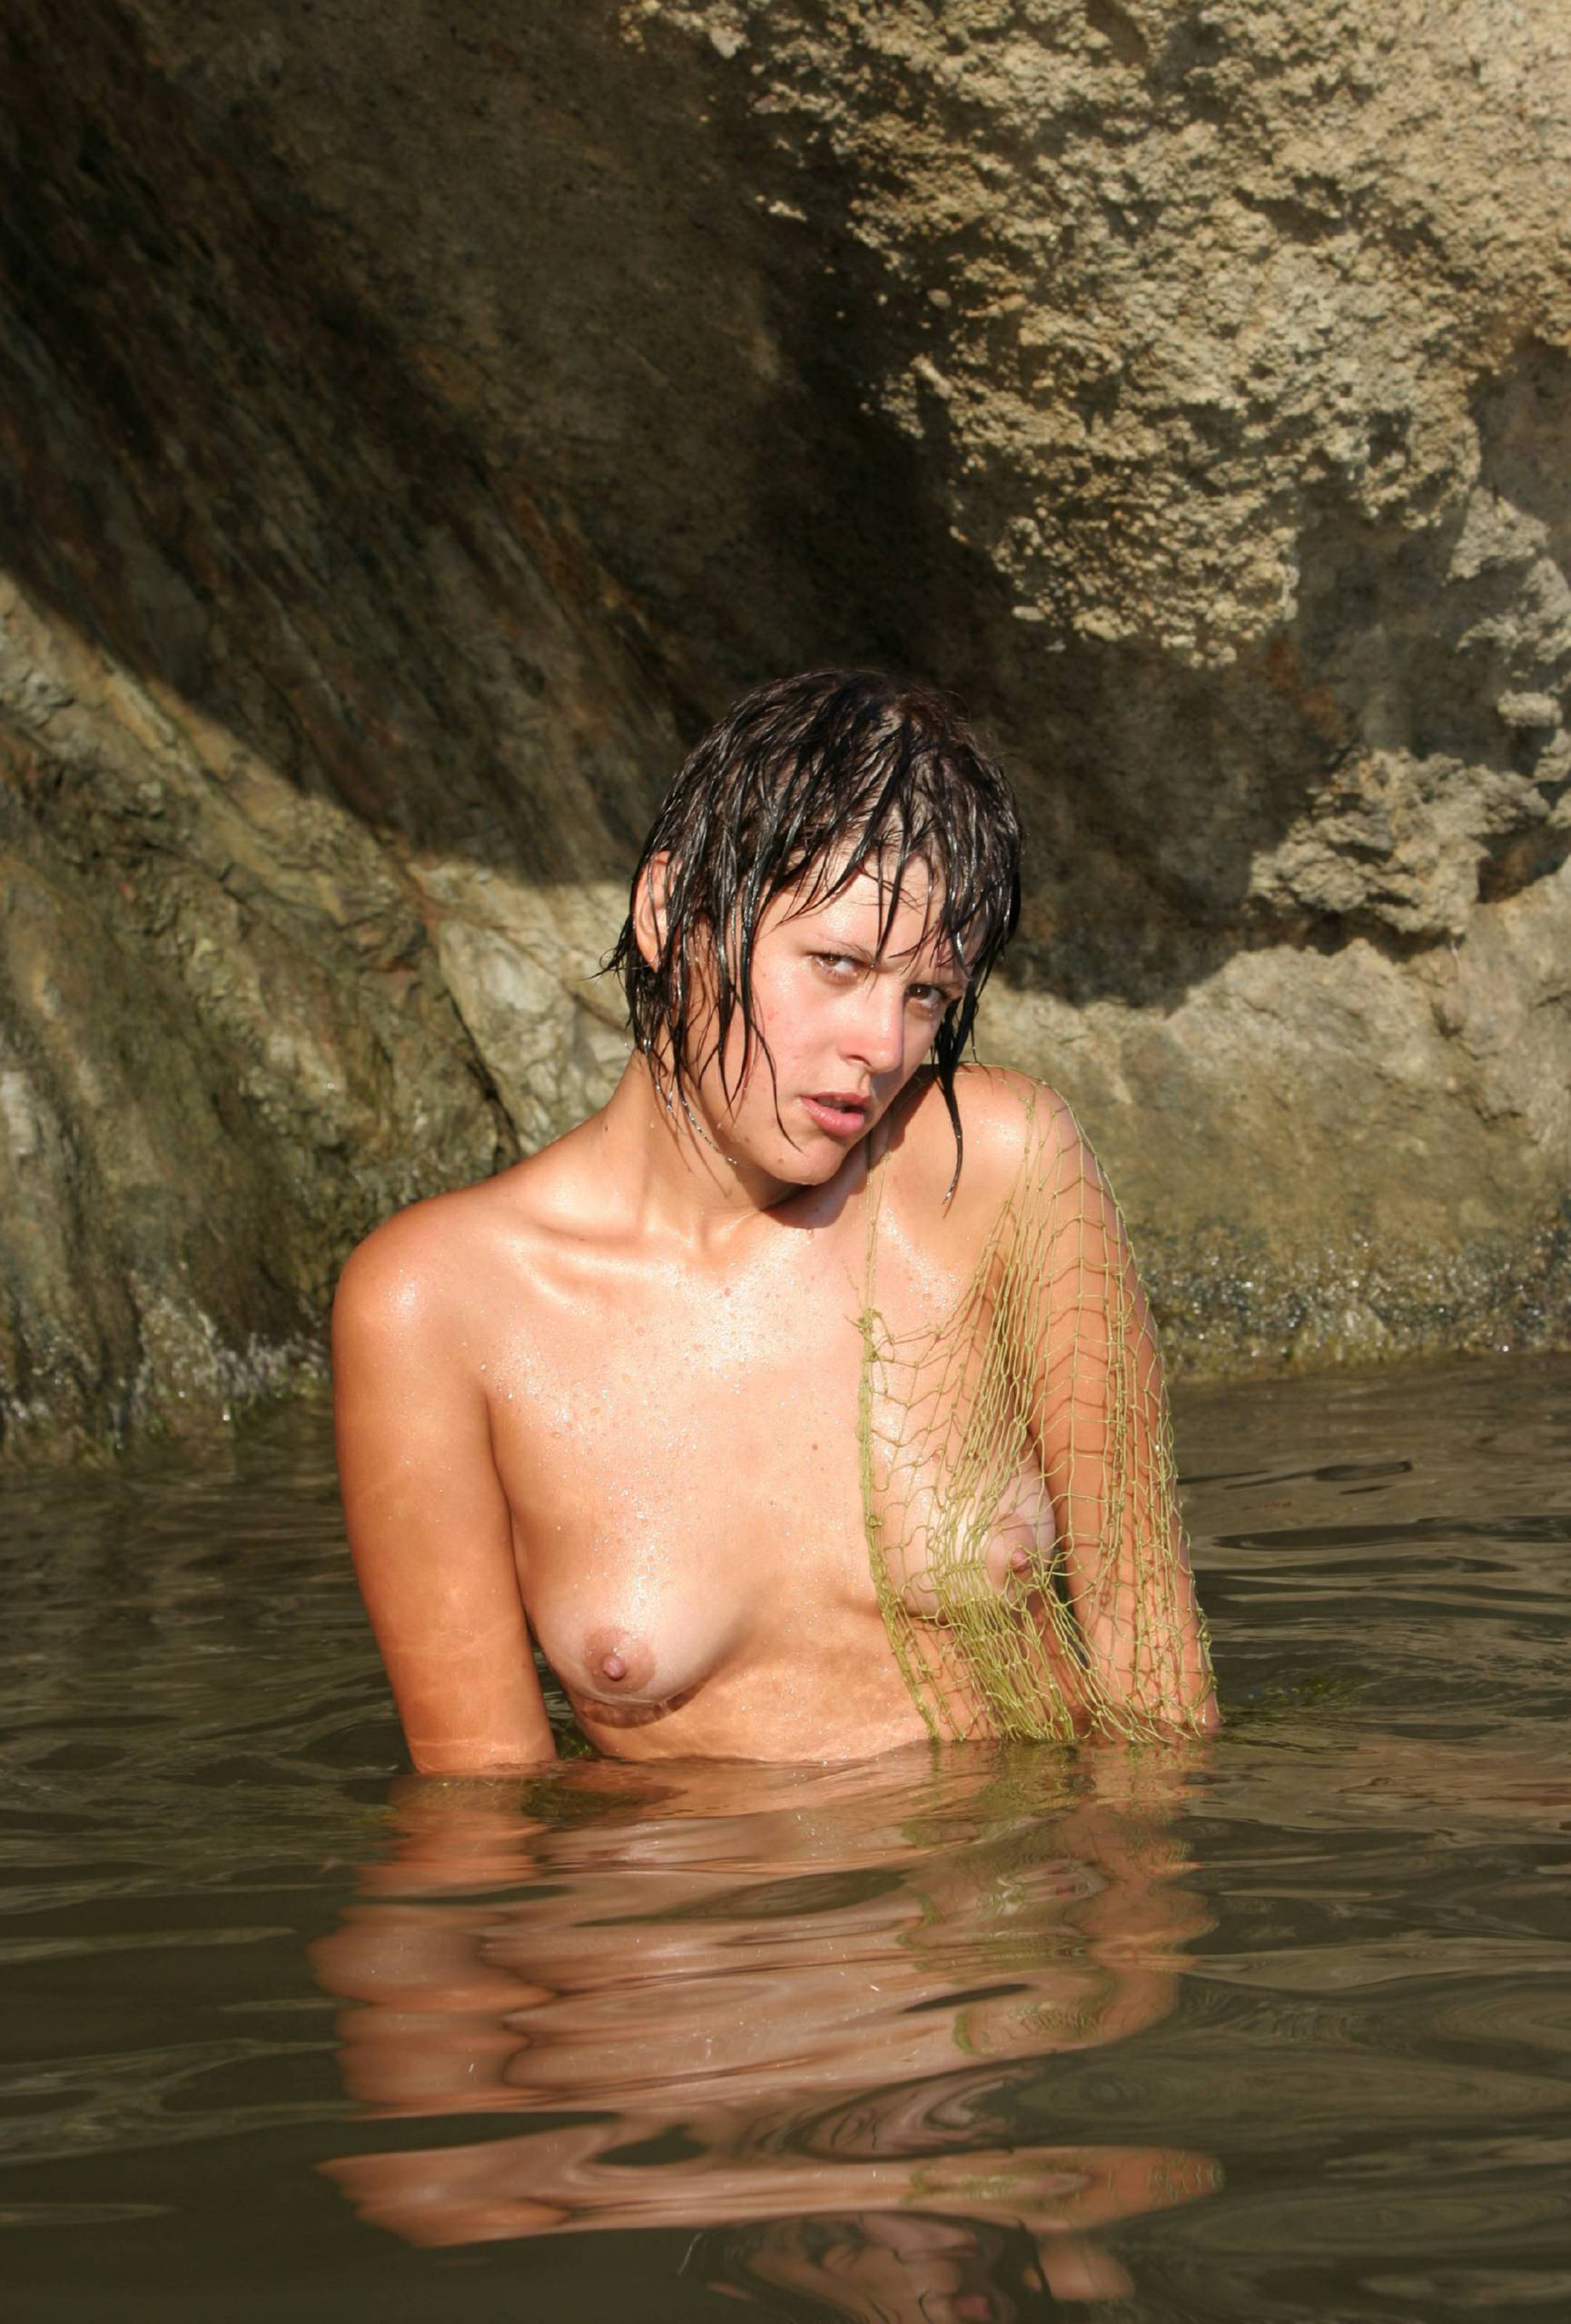 Nudist Pictures Against Rocky Backdrops - 2